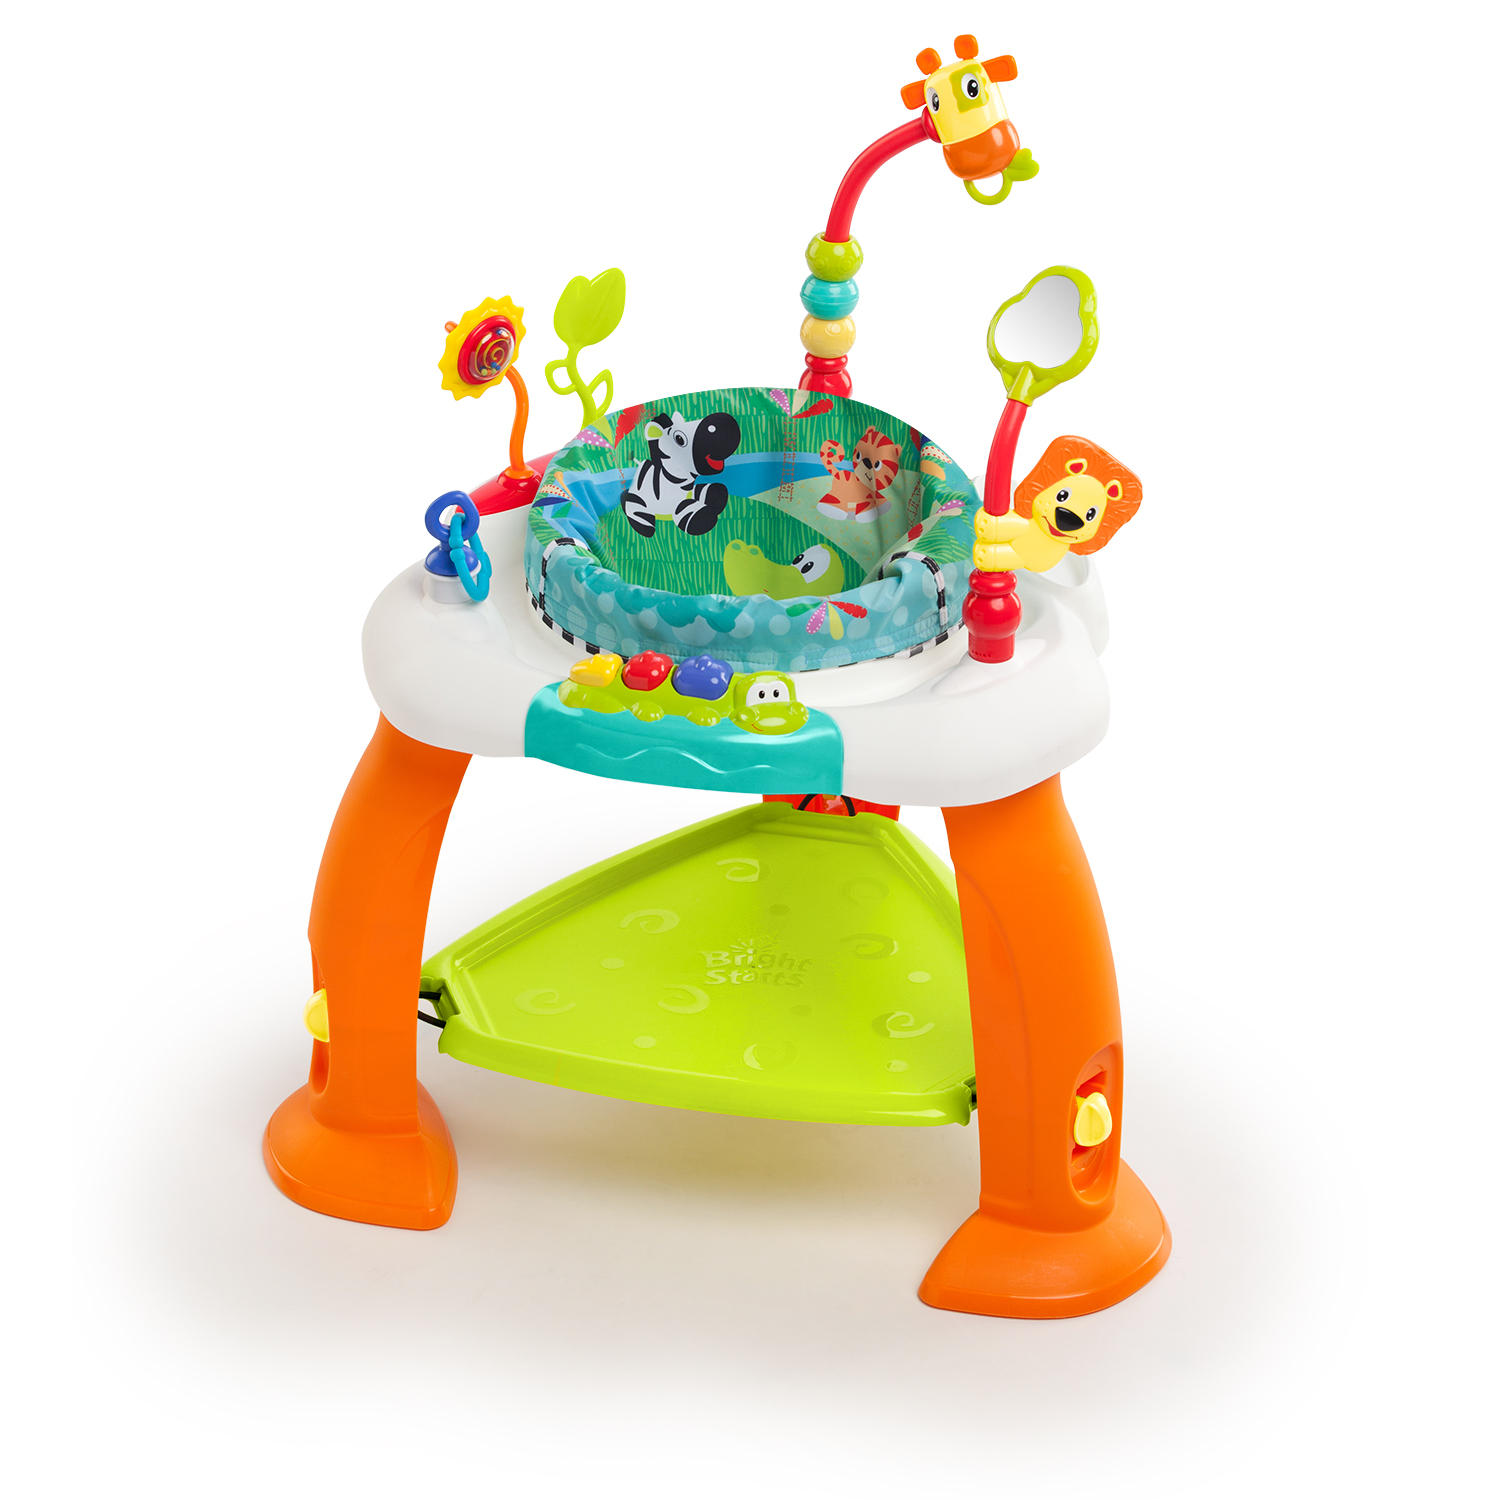 Bright Starts Activity Center, Bounce Bounce Baby